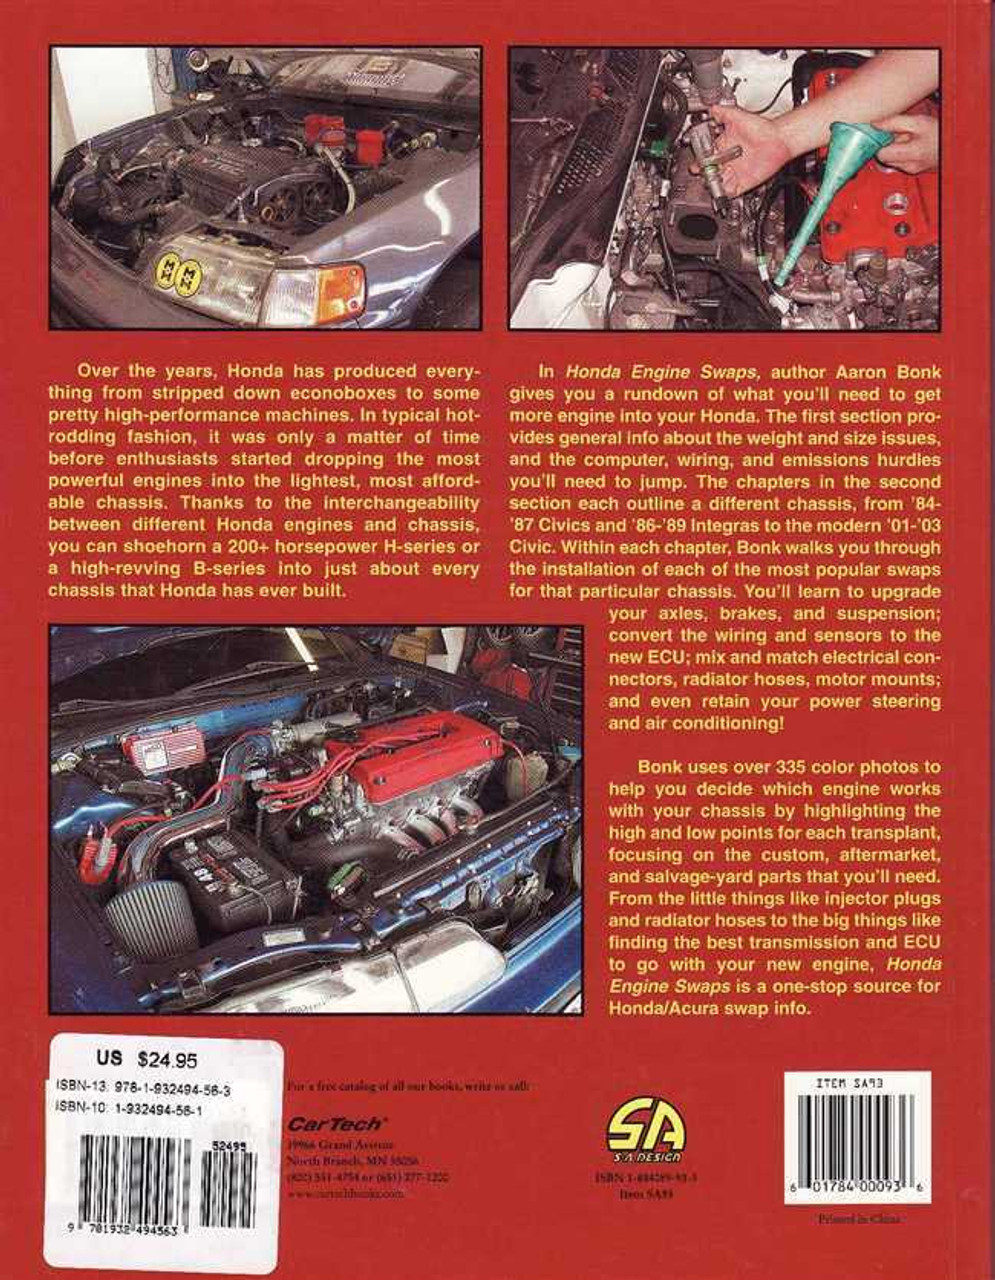 Honda Engine Swaps (Reprint)